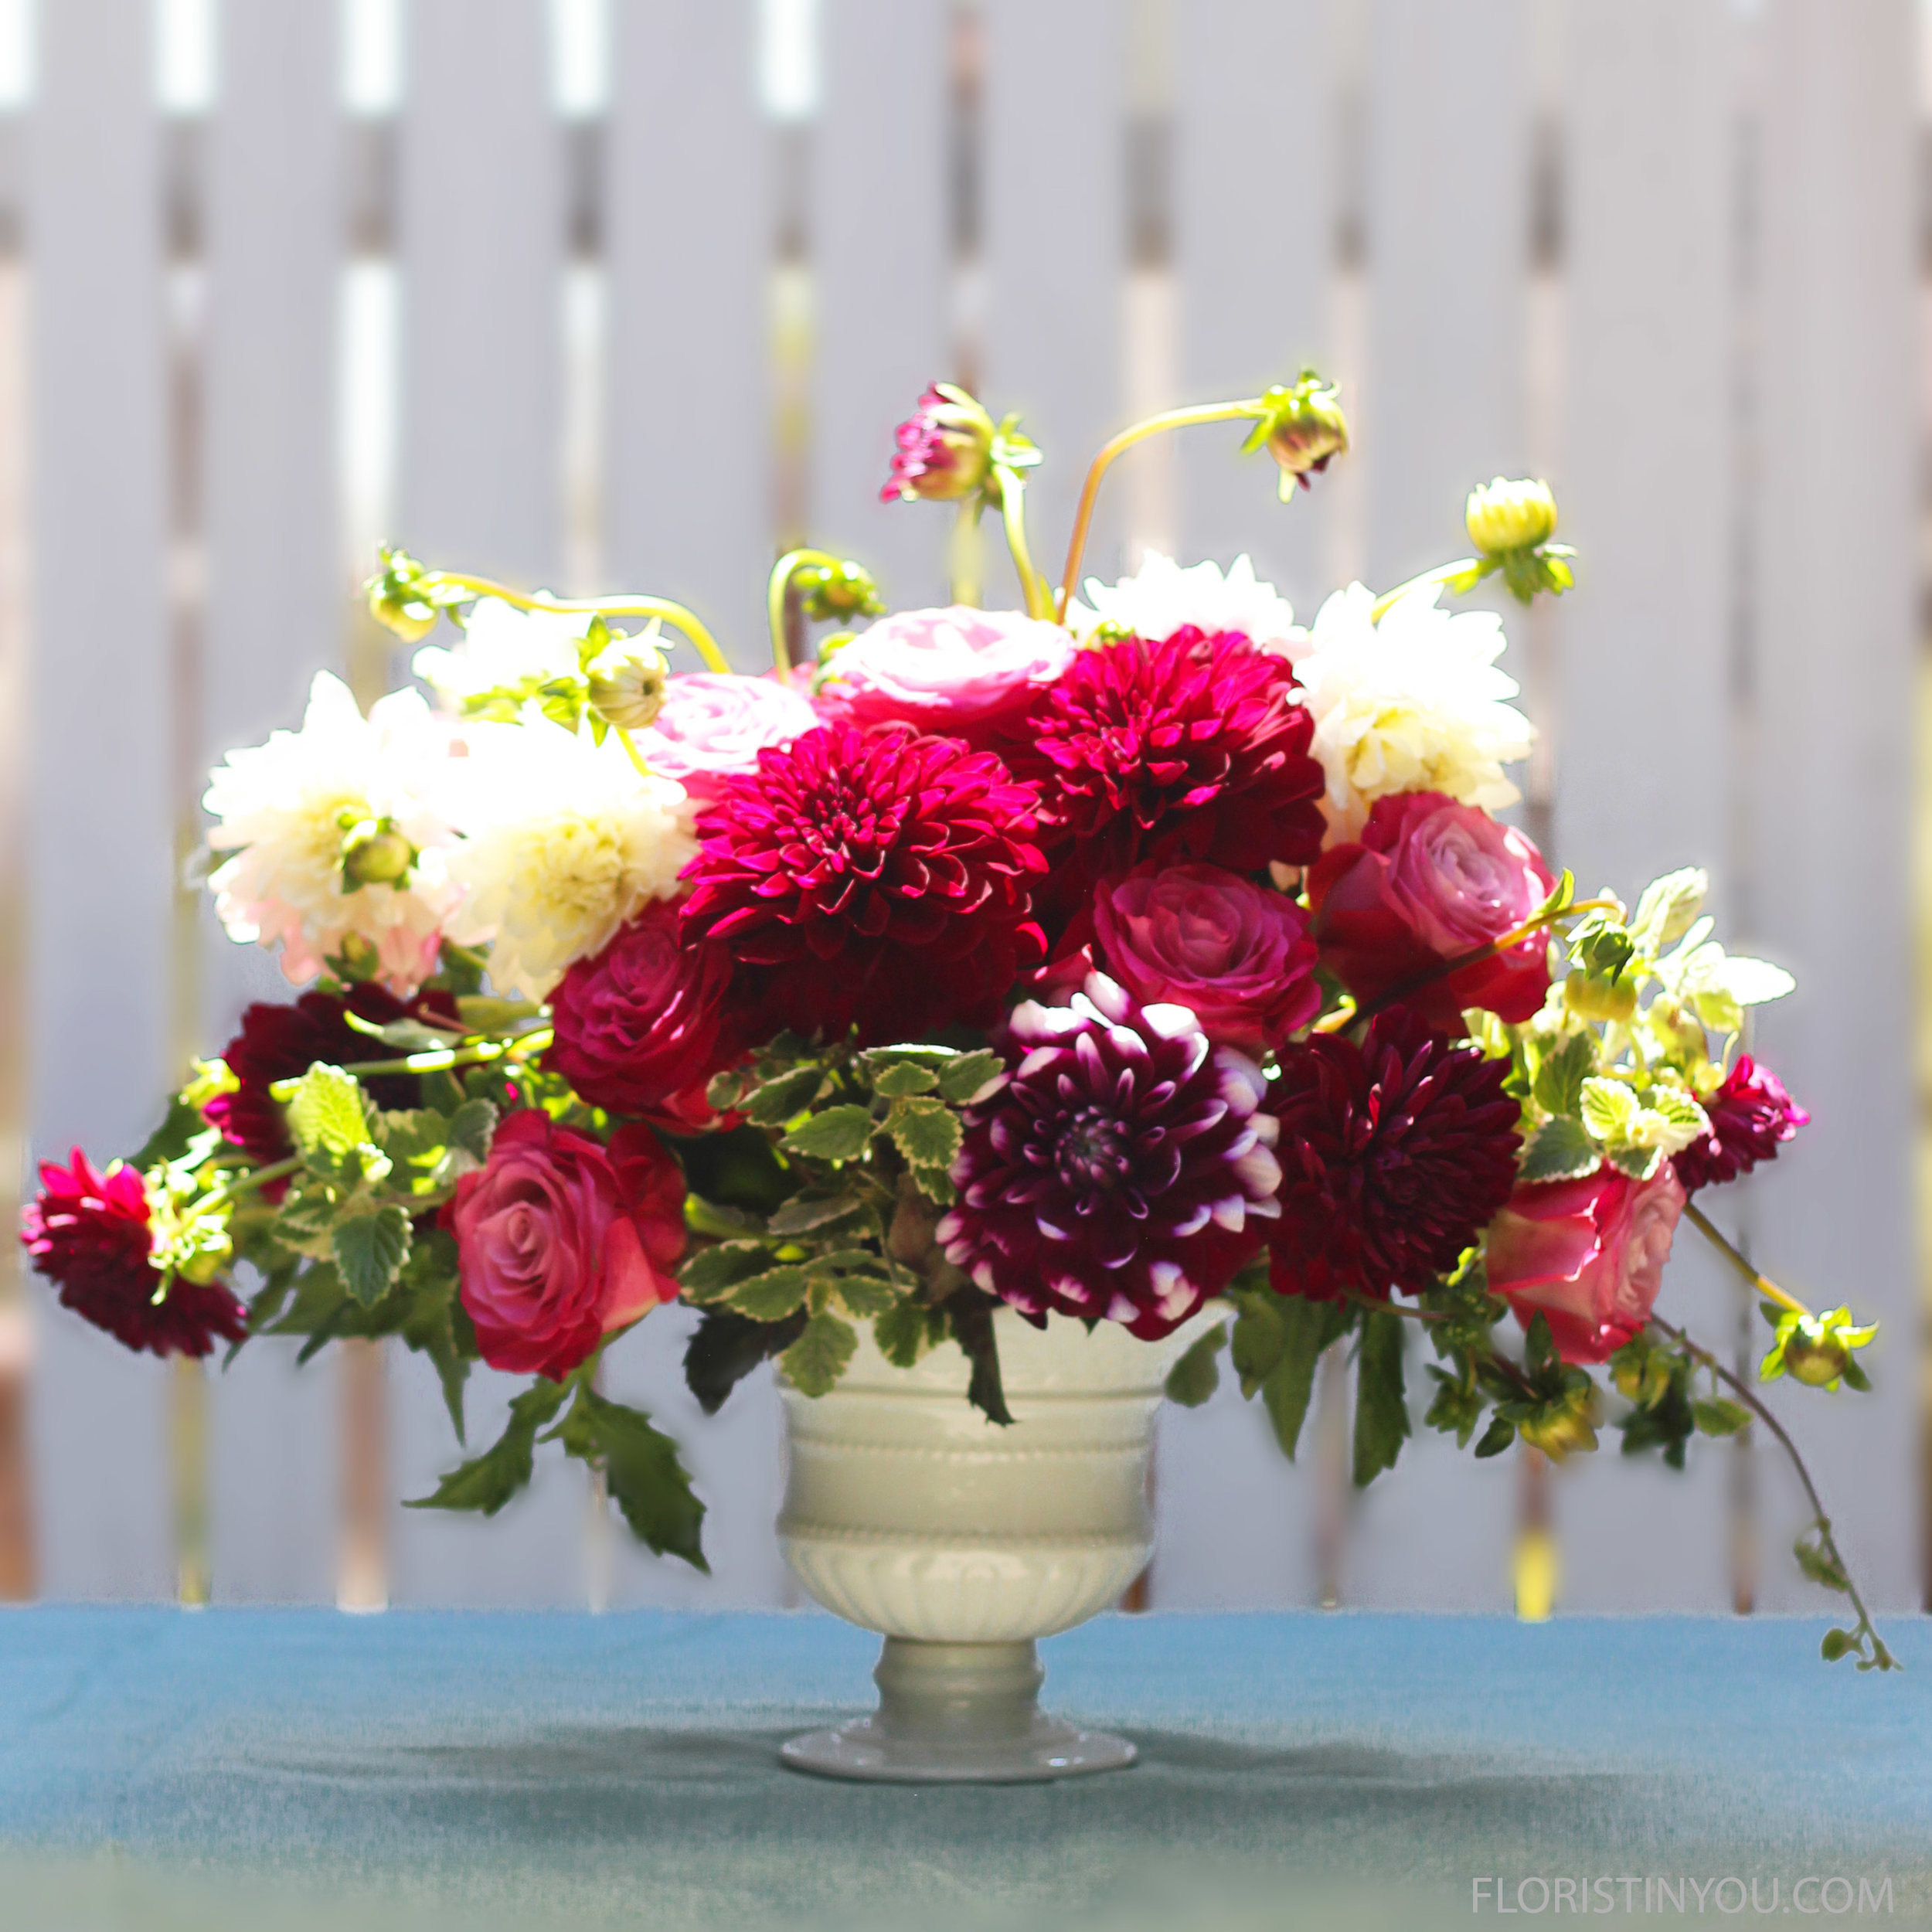 "Dahlias and Roses Flower Arrangement                     Normal   0           false   false   false     EN-US   JA   X-NONE                                                                                                                                                                                                                                                                                                                                                                              /* Style Definitions */ table.MsoNormalTable 	{mso-style-name:""Table Normal""; 	mso-tstyle-rowband-size:0; 	mso-tstyle-colband-size:0; 	mso-style-noshow:yes; 	mso-style-priority:99; 	mso-style-parent:""""; 	mso-padding-alt:0in 5.4pt 0in 5.4pt; 	mso-para-margin:0in; 	mso-para-margin-bottom:.0001pt; 	mso-pagination:widow-orphan; 	font-size:12.0pt; 	font-family:Cambria; 	mso-ascii-font-family:Cambria; 	mso-ascii-theme-font:minor-latin; 	mso-hansi-font-family:Cambria; 	mso-hansi-theme-font:minor-latin;}"